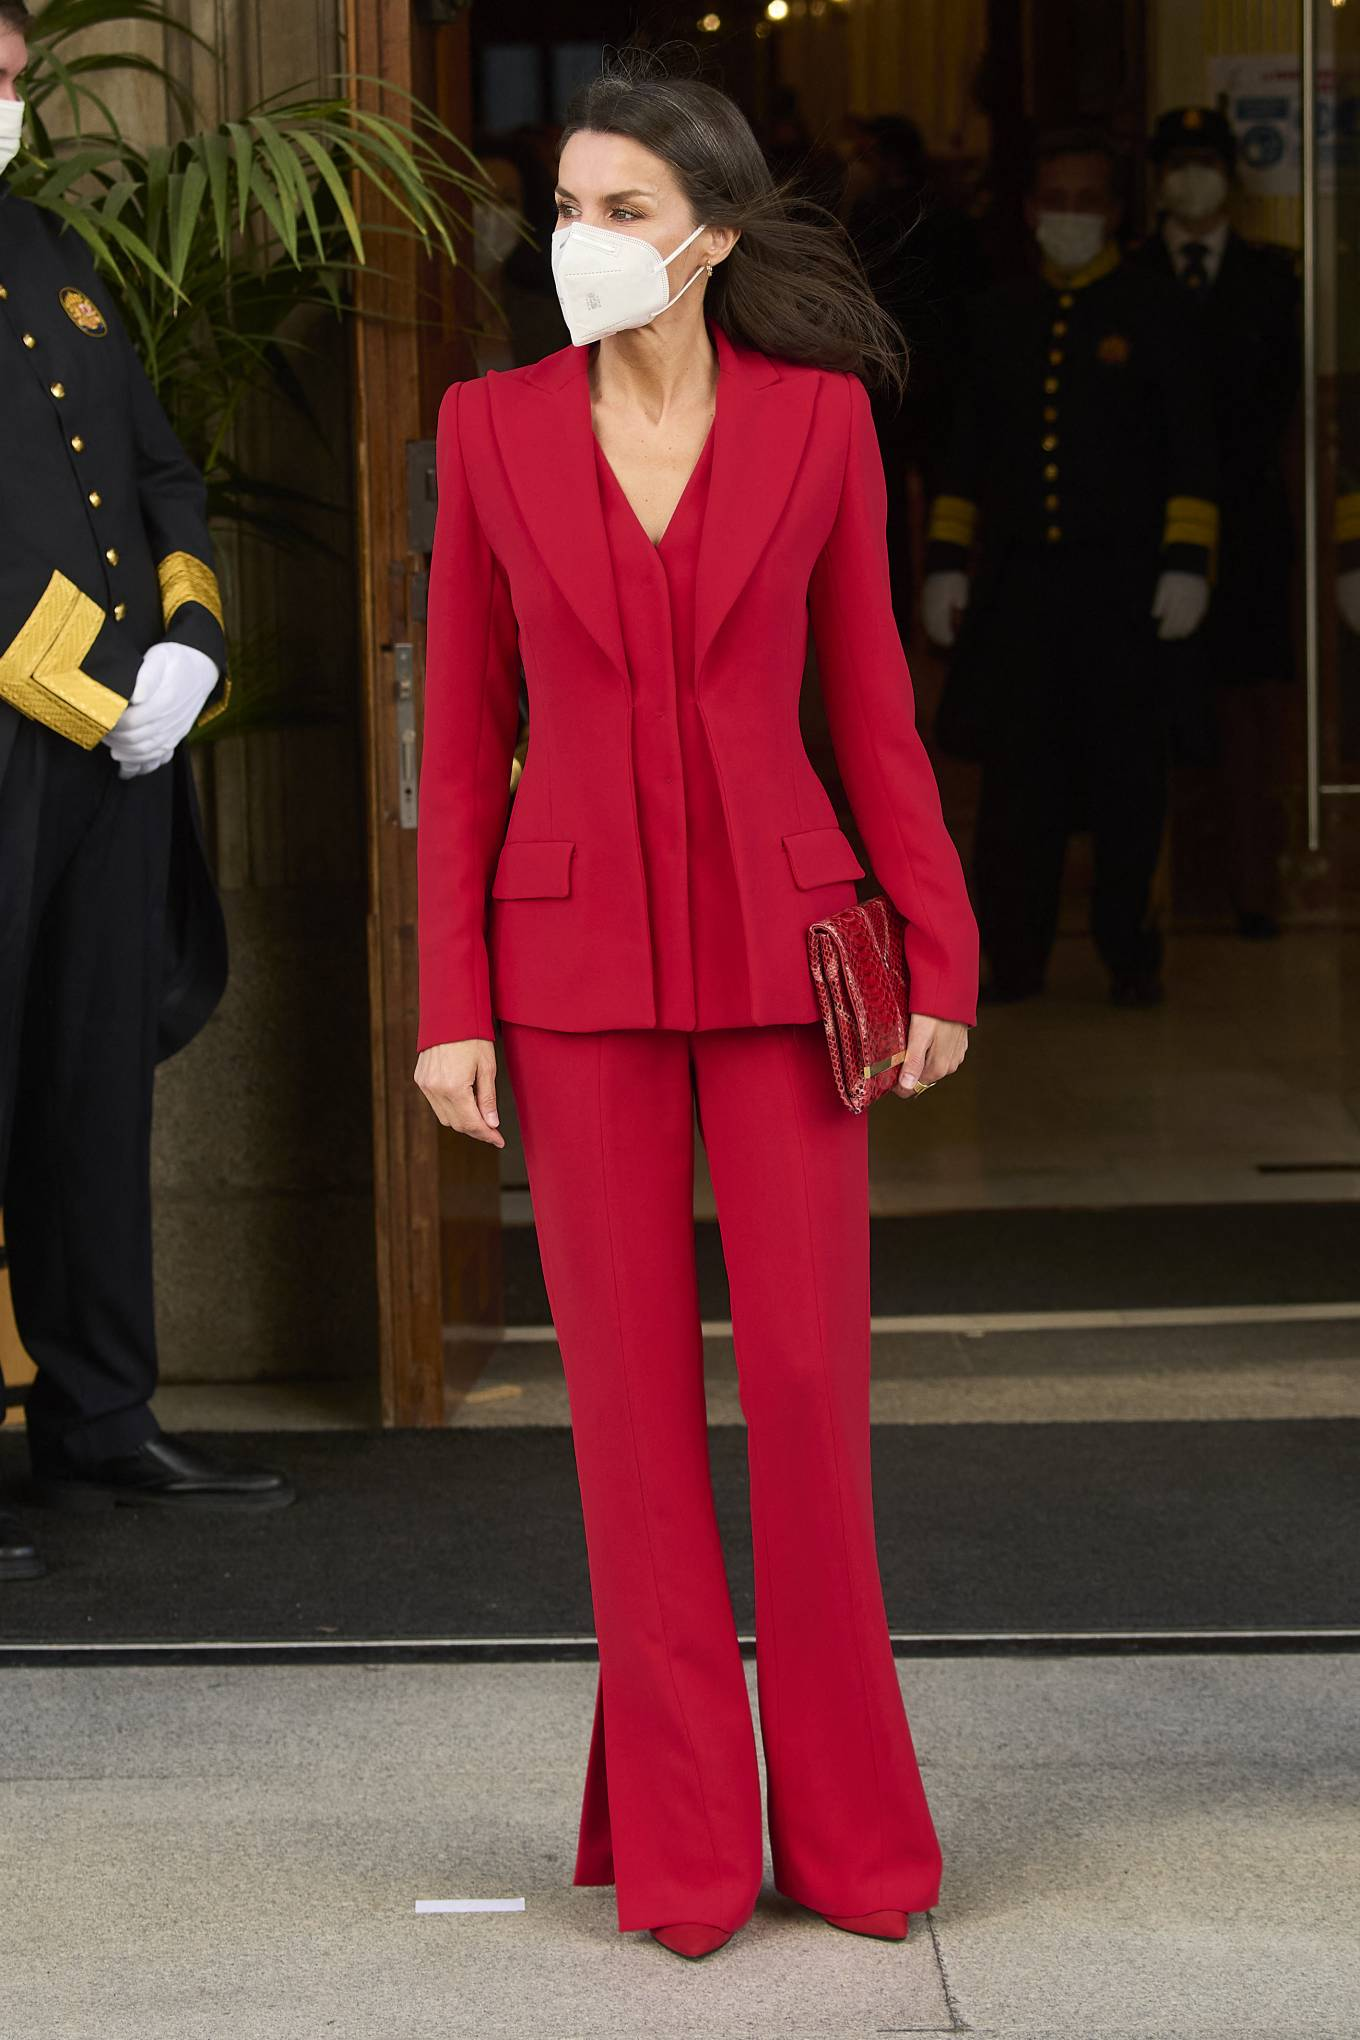 Queen Letizia Of Spain 2021 : Queen Letizia of Spain – In all red attends the tribute to the figure of Clara Campoamor in Madrid-17